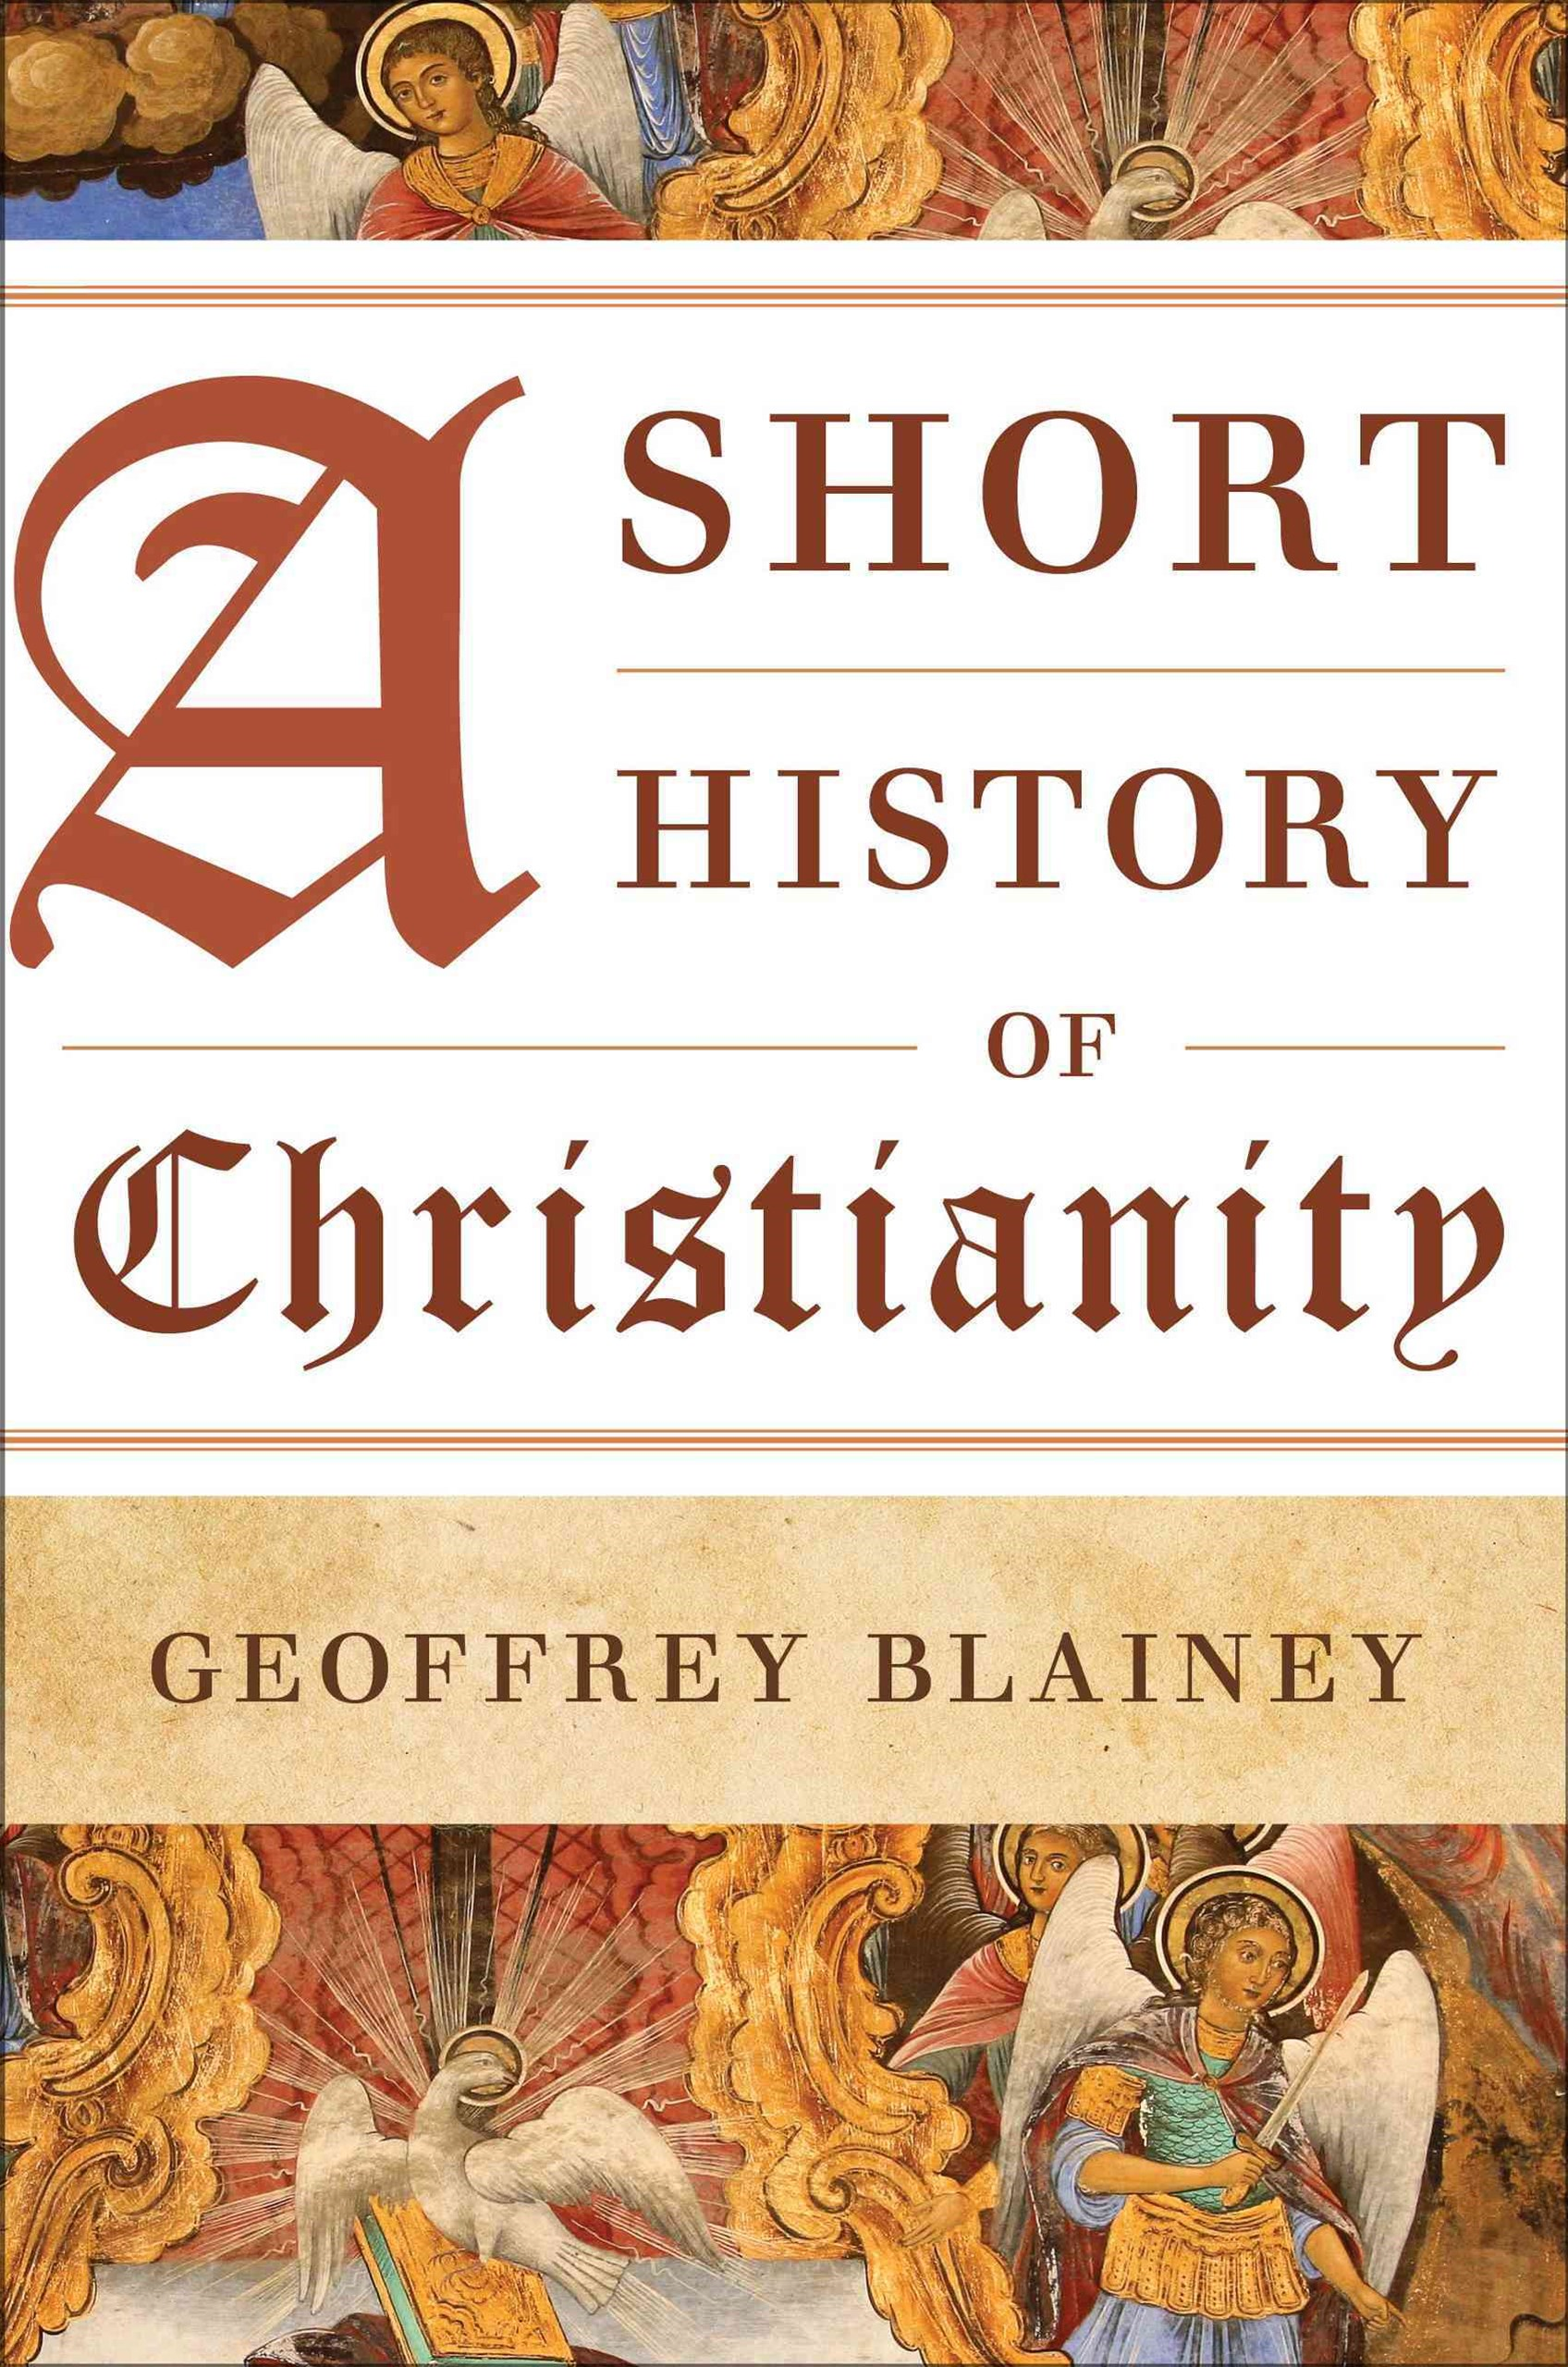 A Short History of Chrisitanity